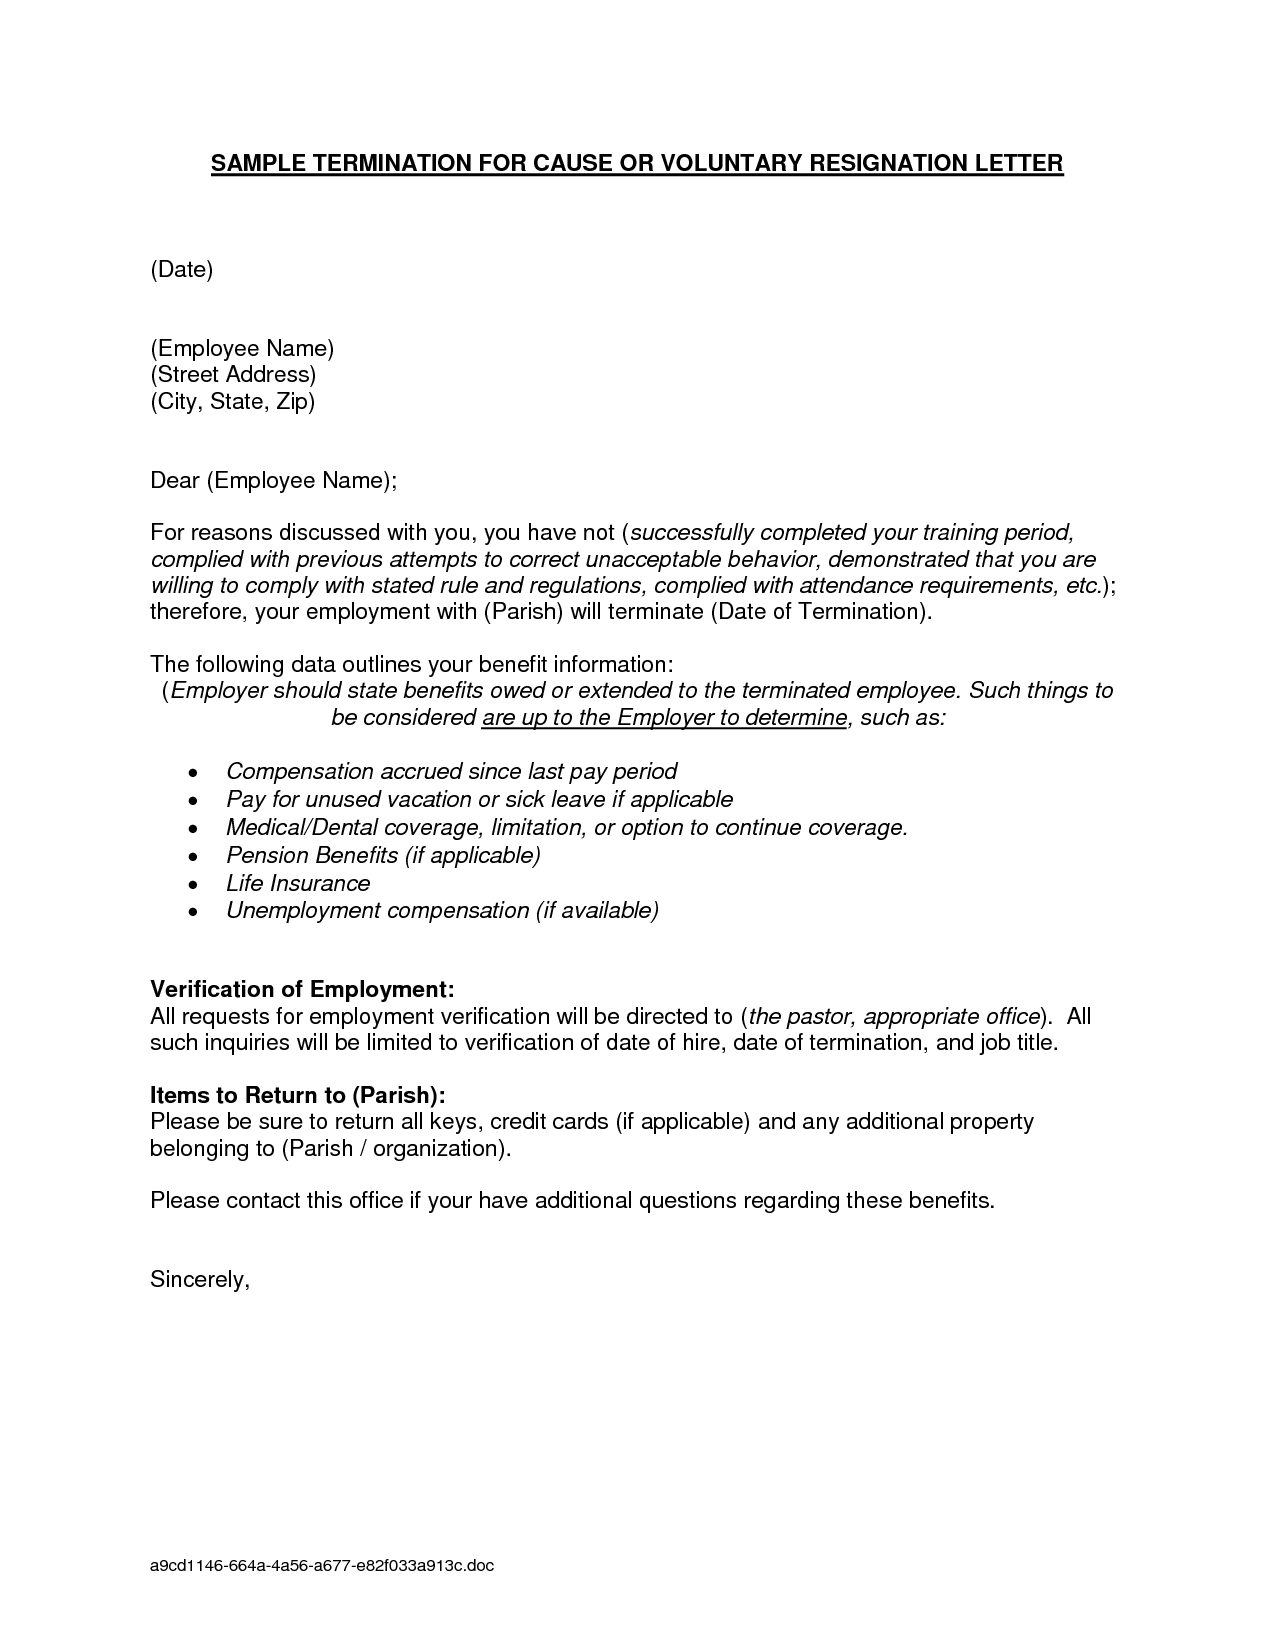 Medical resignation letter sample due illness example icover medical resignation letter sample due illness example icover spiritdancerdesigns Image collections